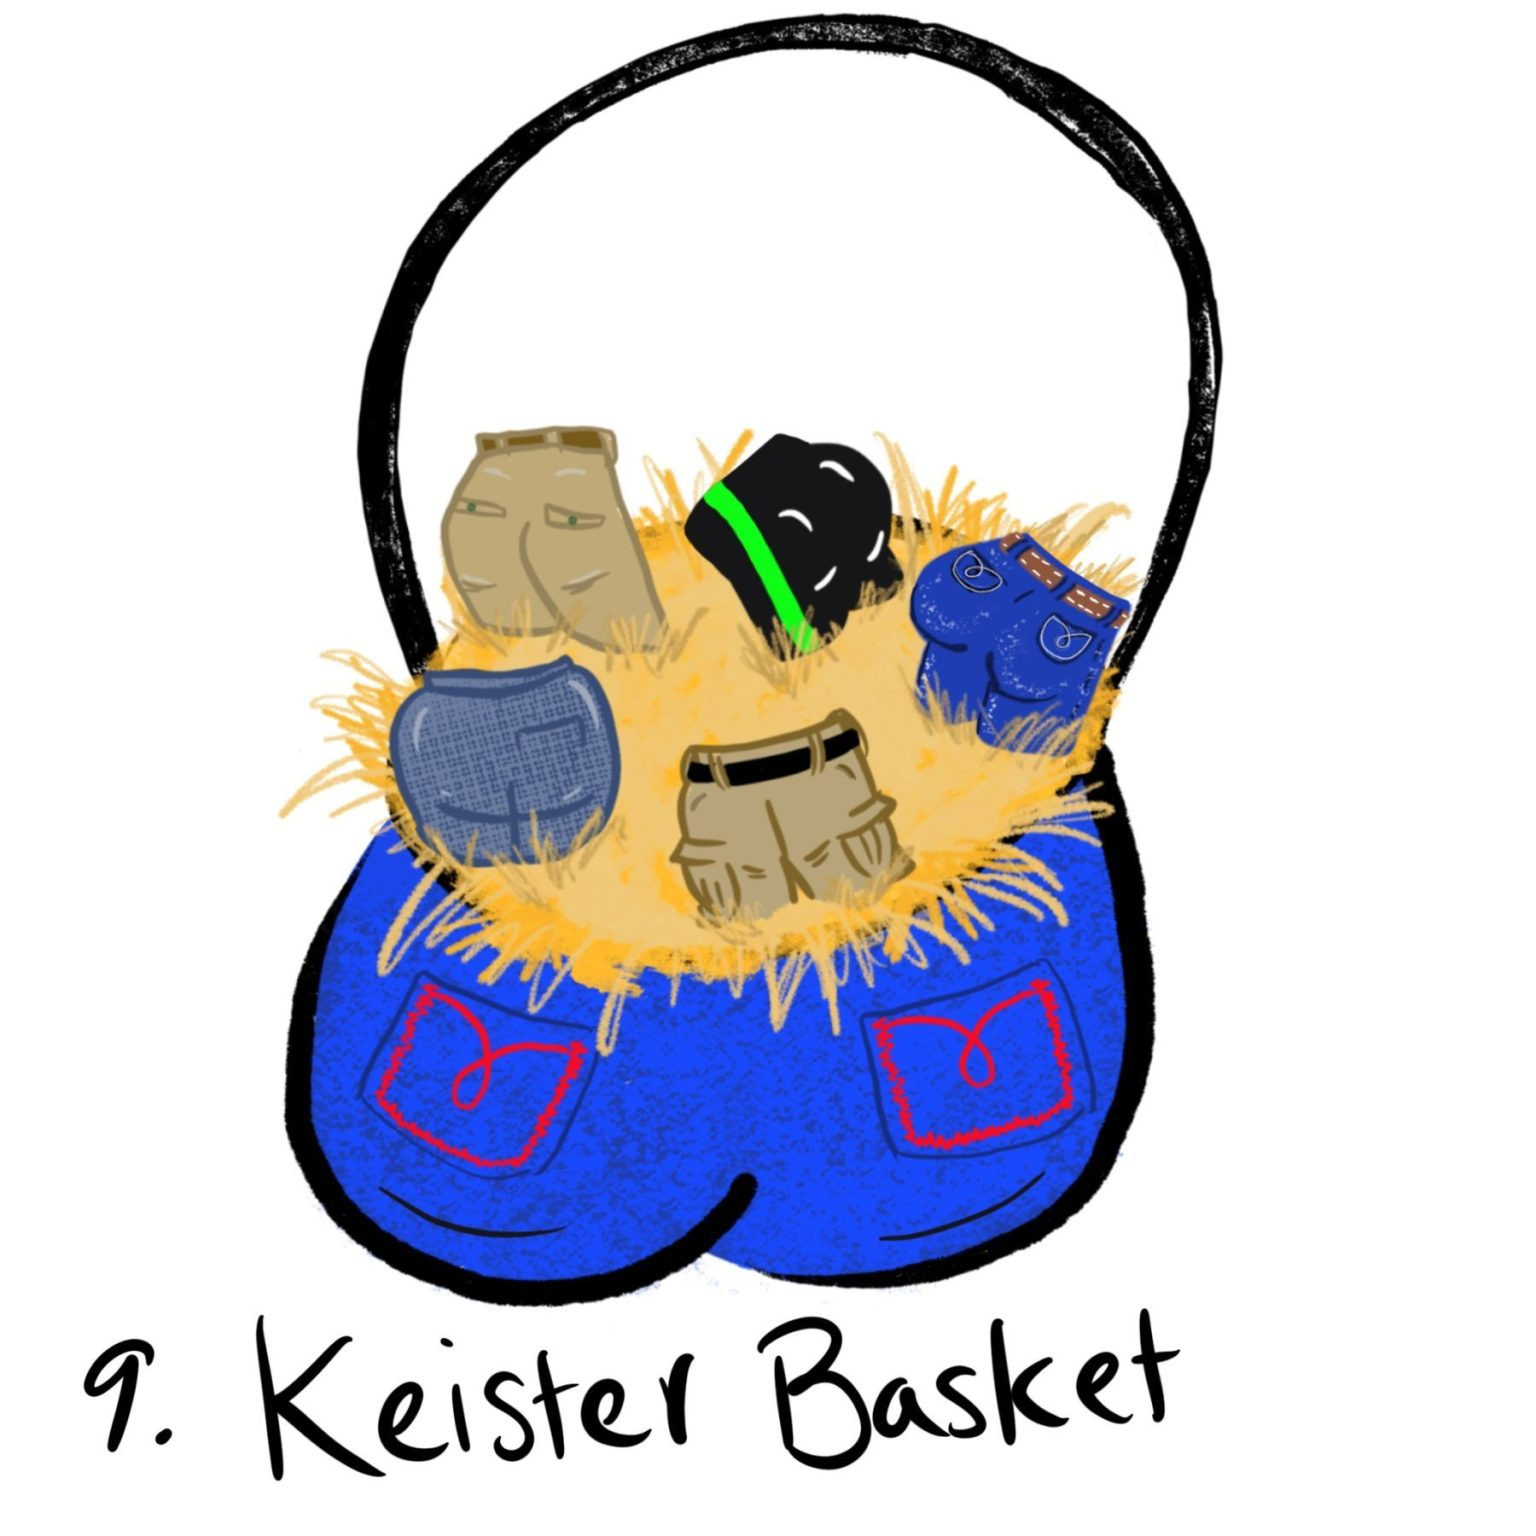 9-basket-scaled.jpg